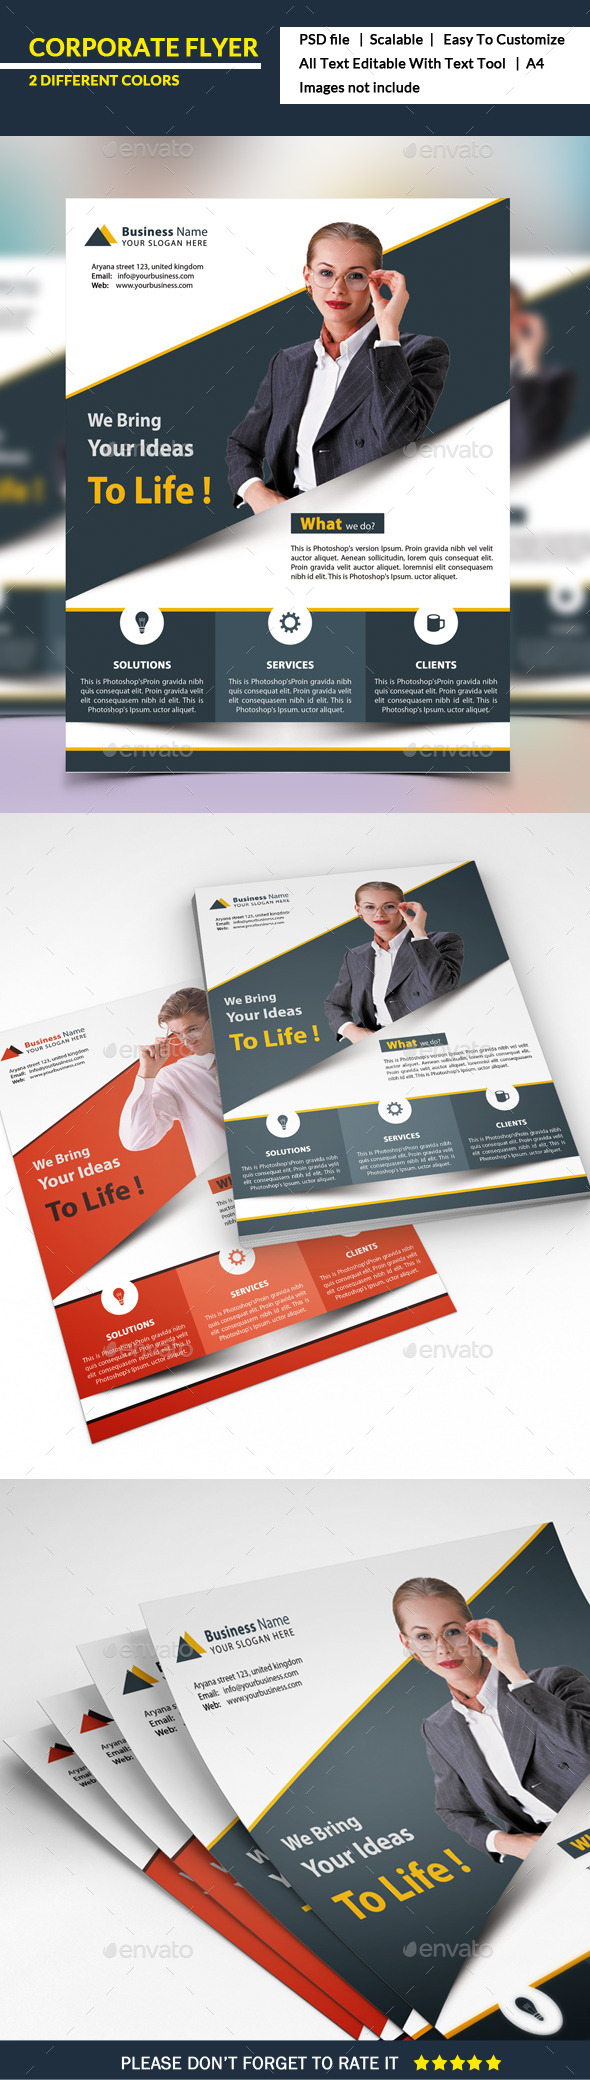 Corprorate Flyer - Corporate Flyers